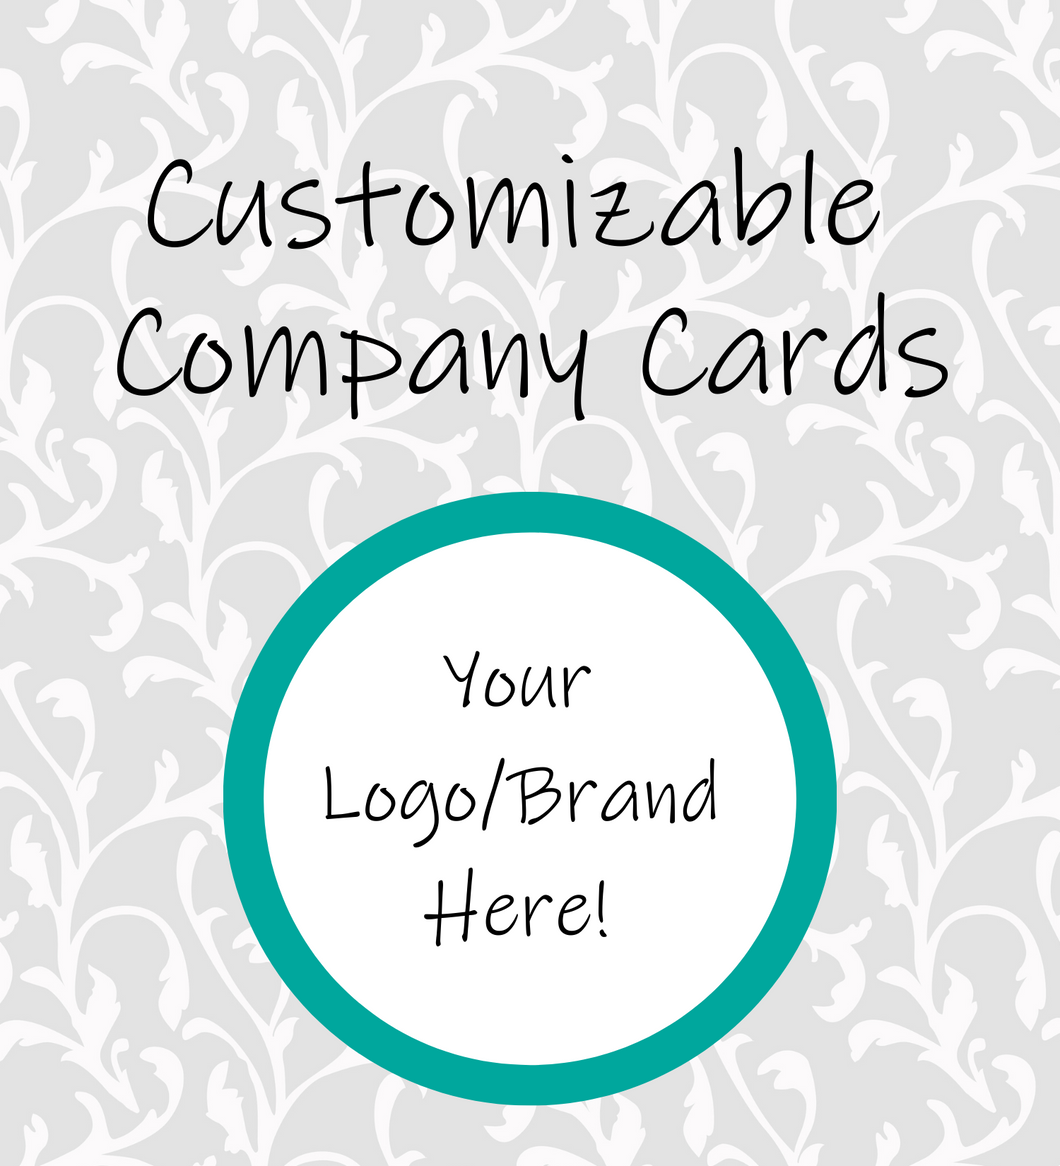 Customizable Company Card